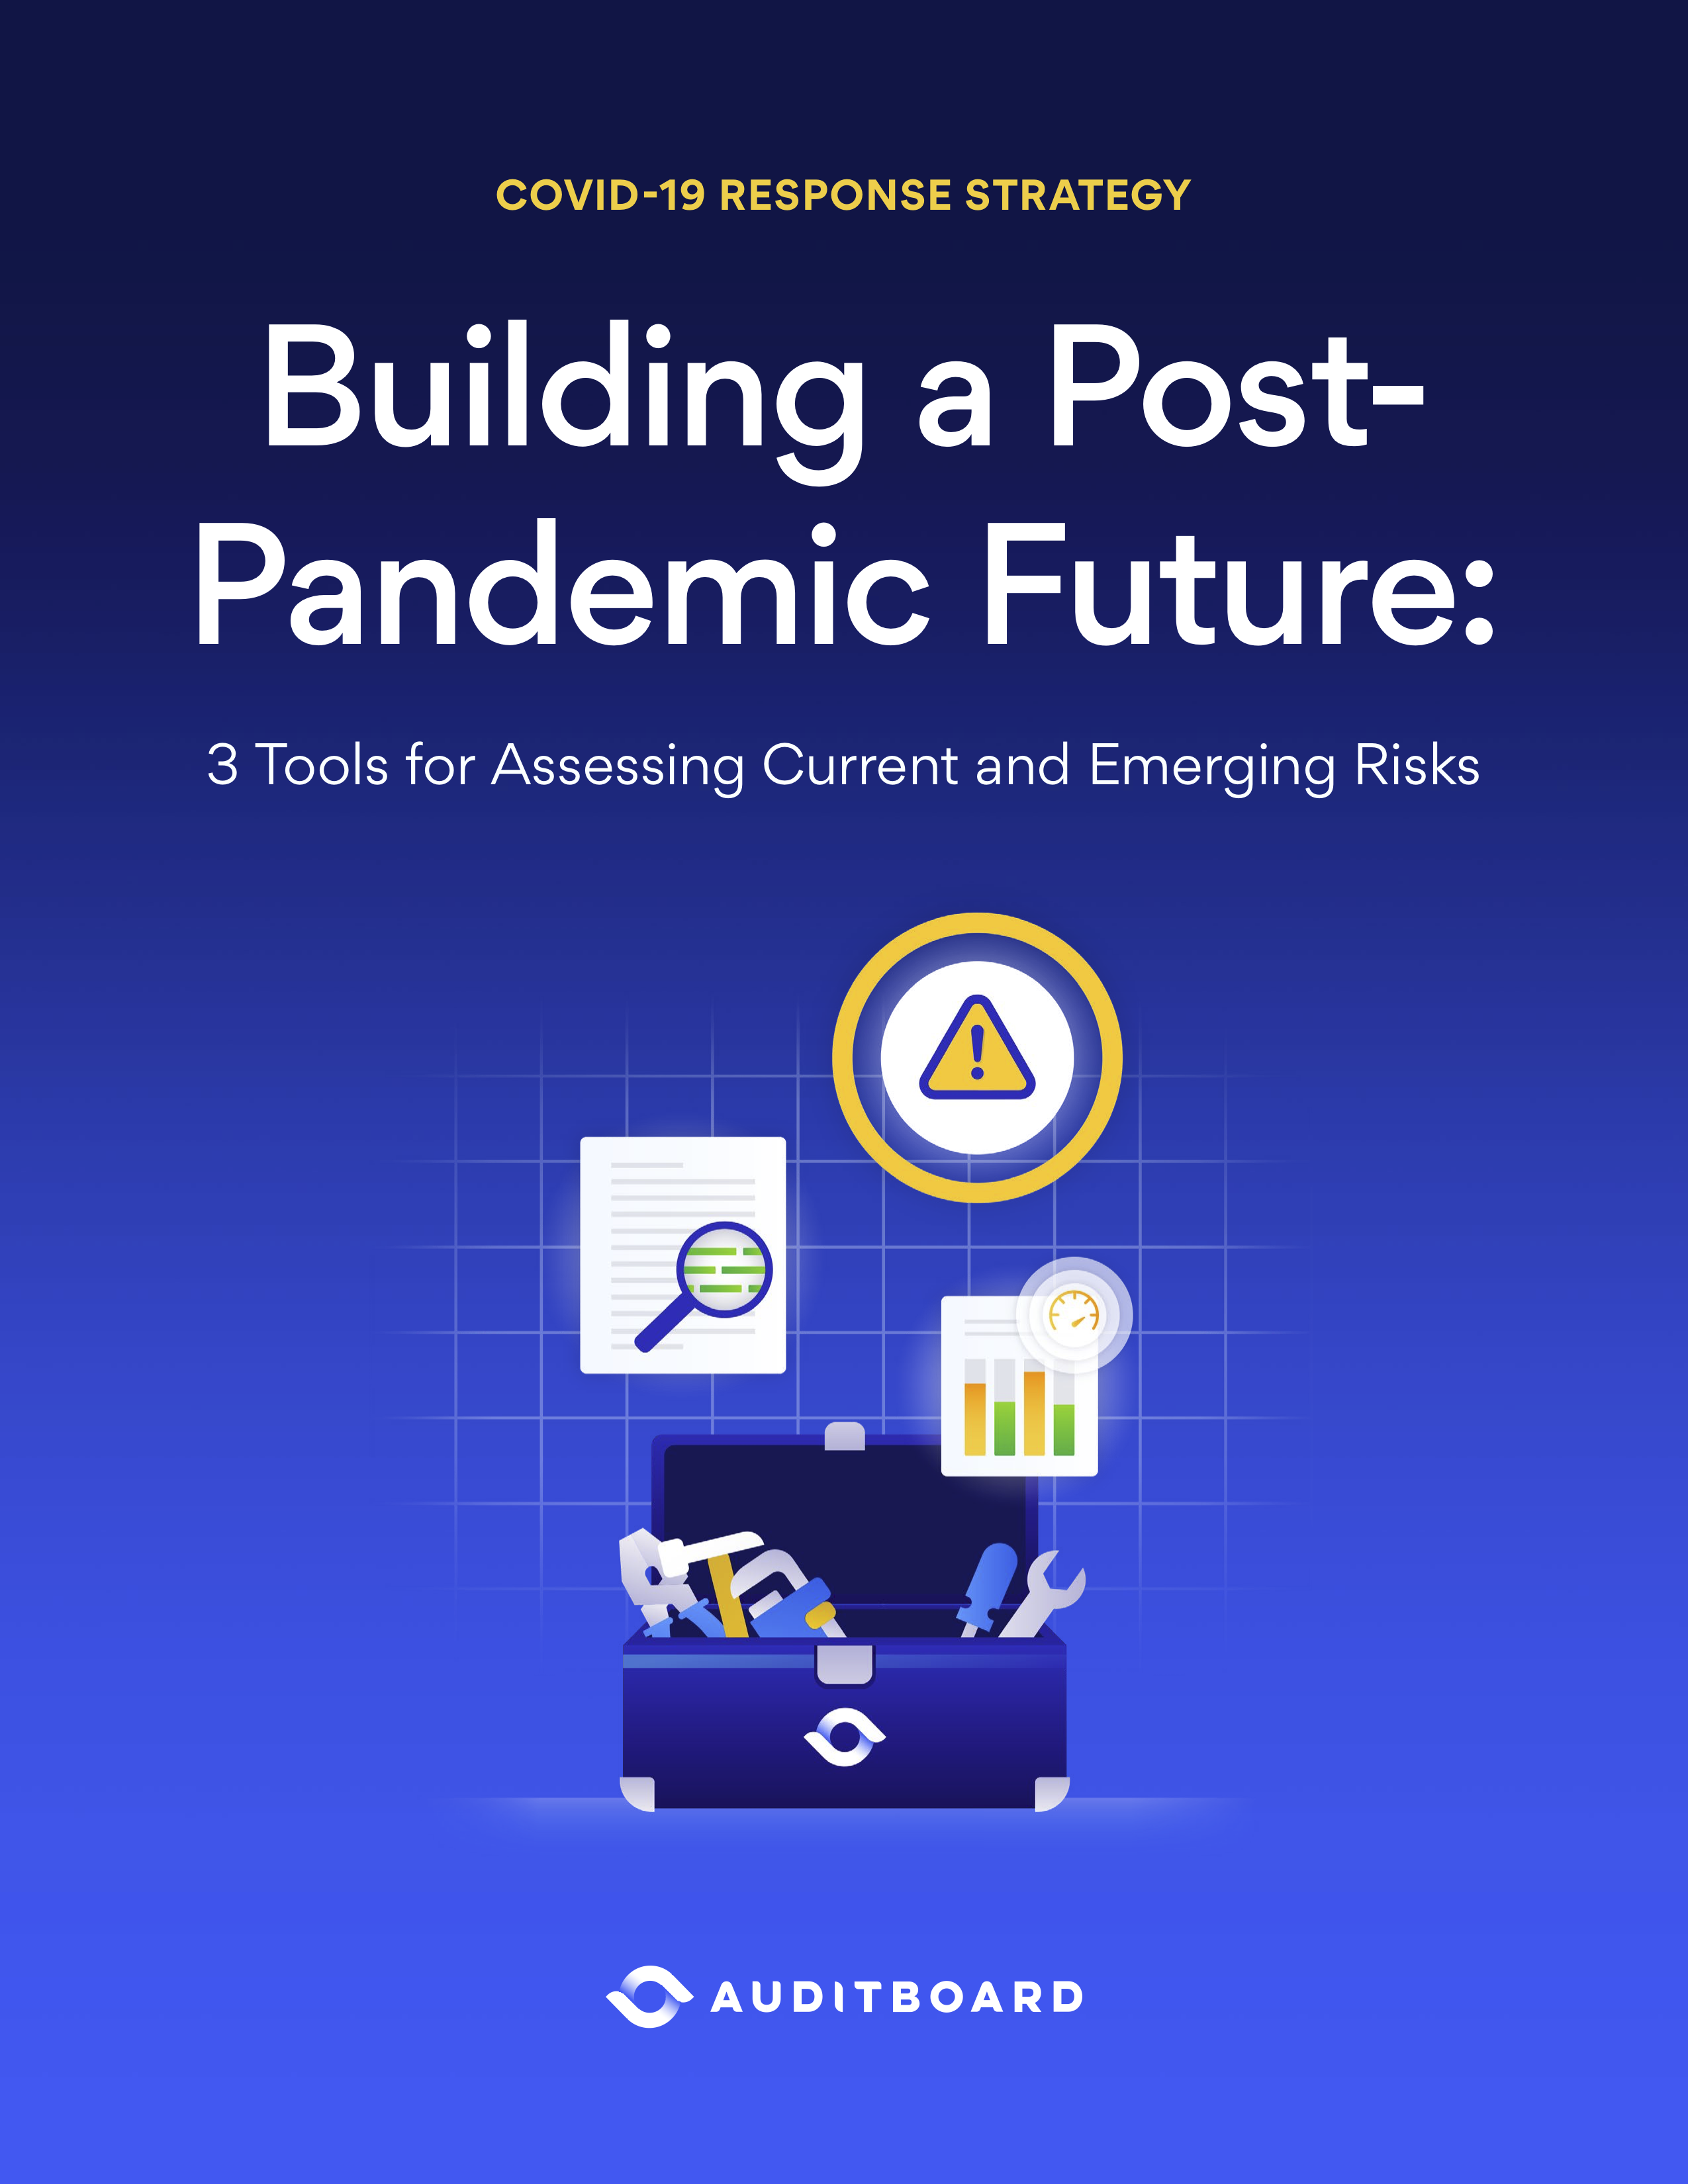 Building a Post-Pandemic Future: 3 Tools for Assessing Current and Emerging Risks